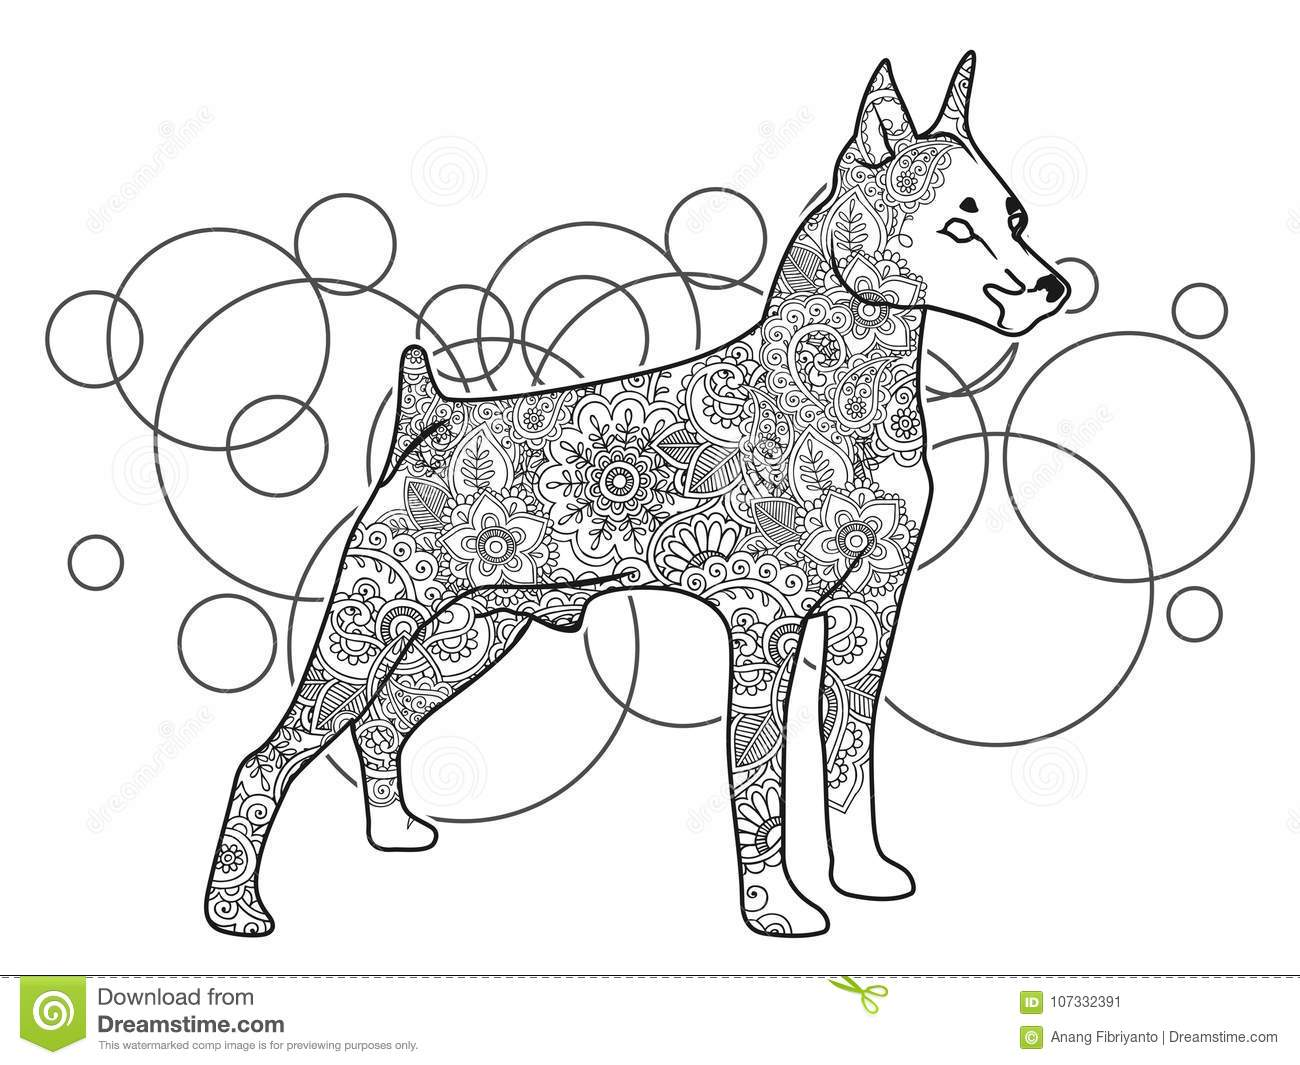 black white hand drawn dog doodle animal paisley adult stress release coloring page zentangle